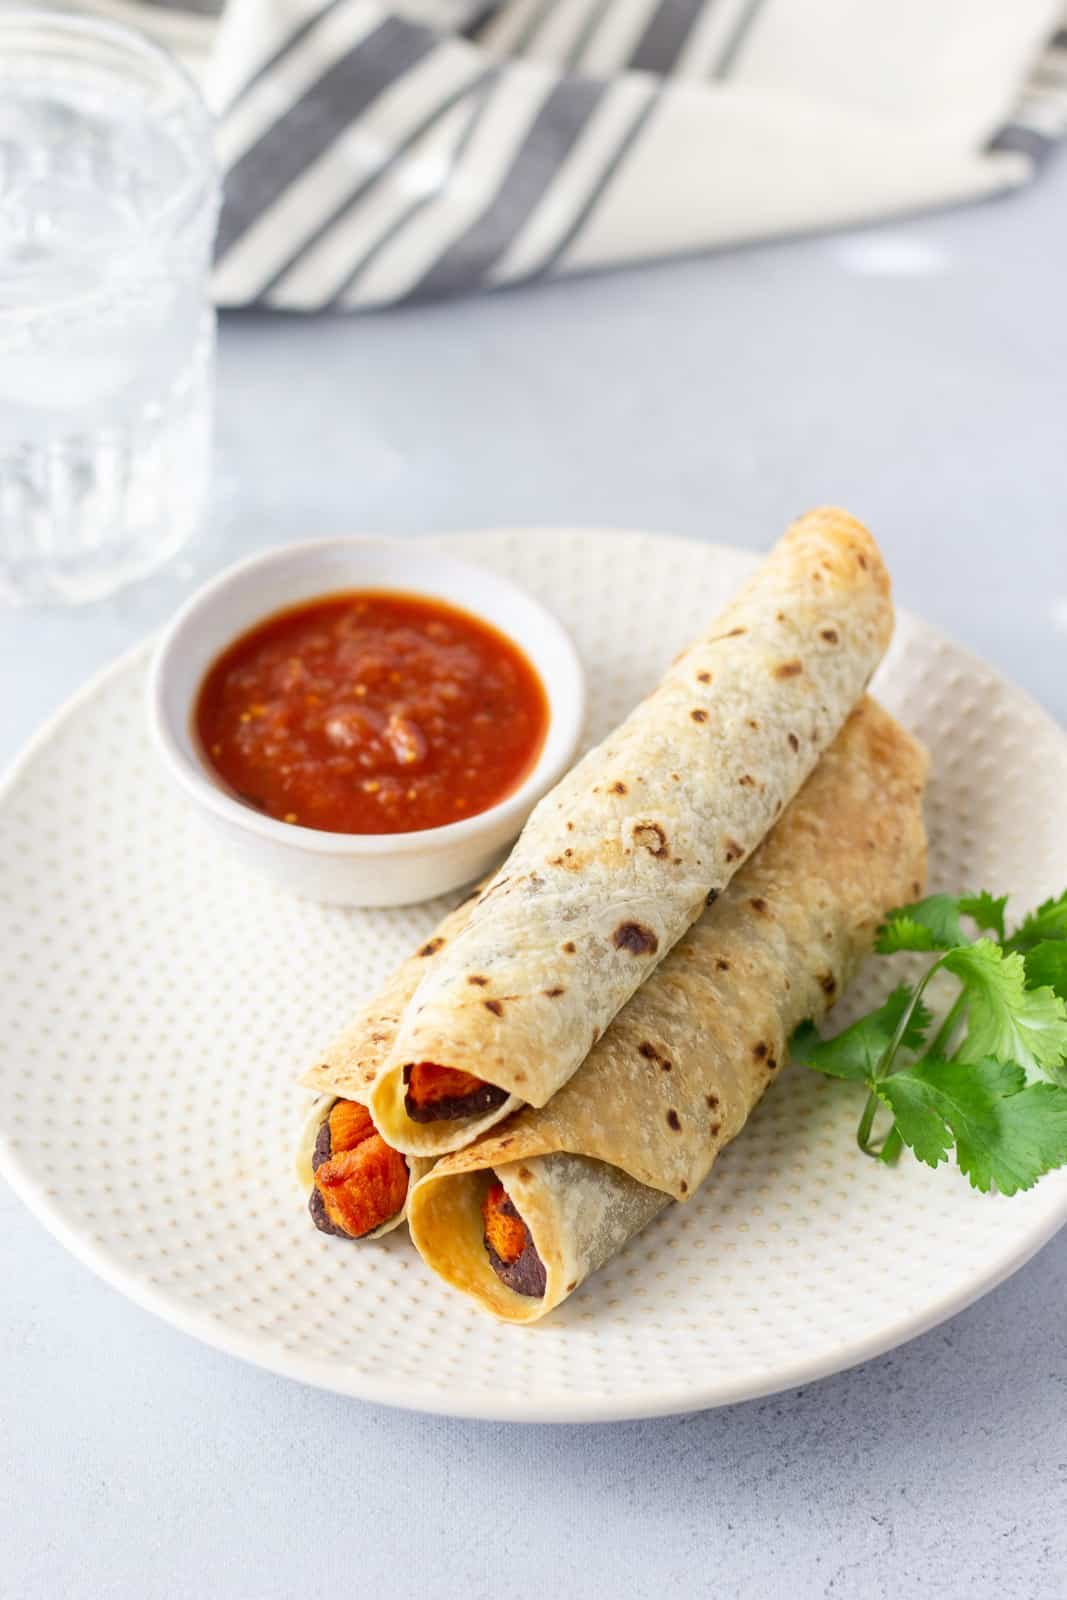 3 sweet potato flautas on a plate with a side of salsa and cilantro garnish.